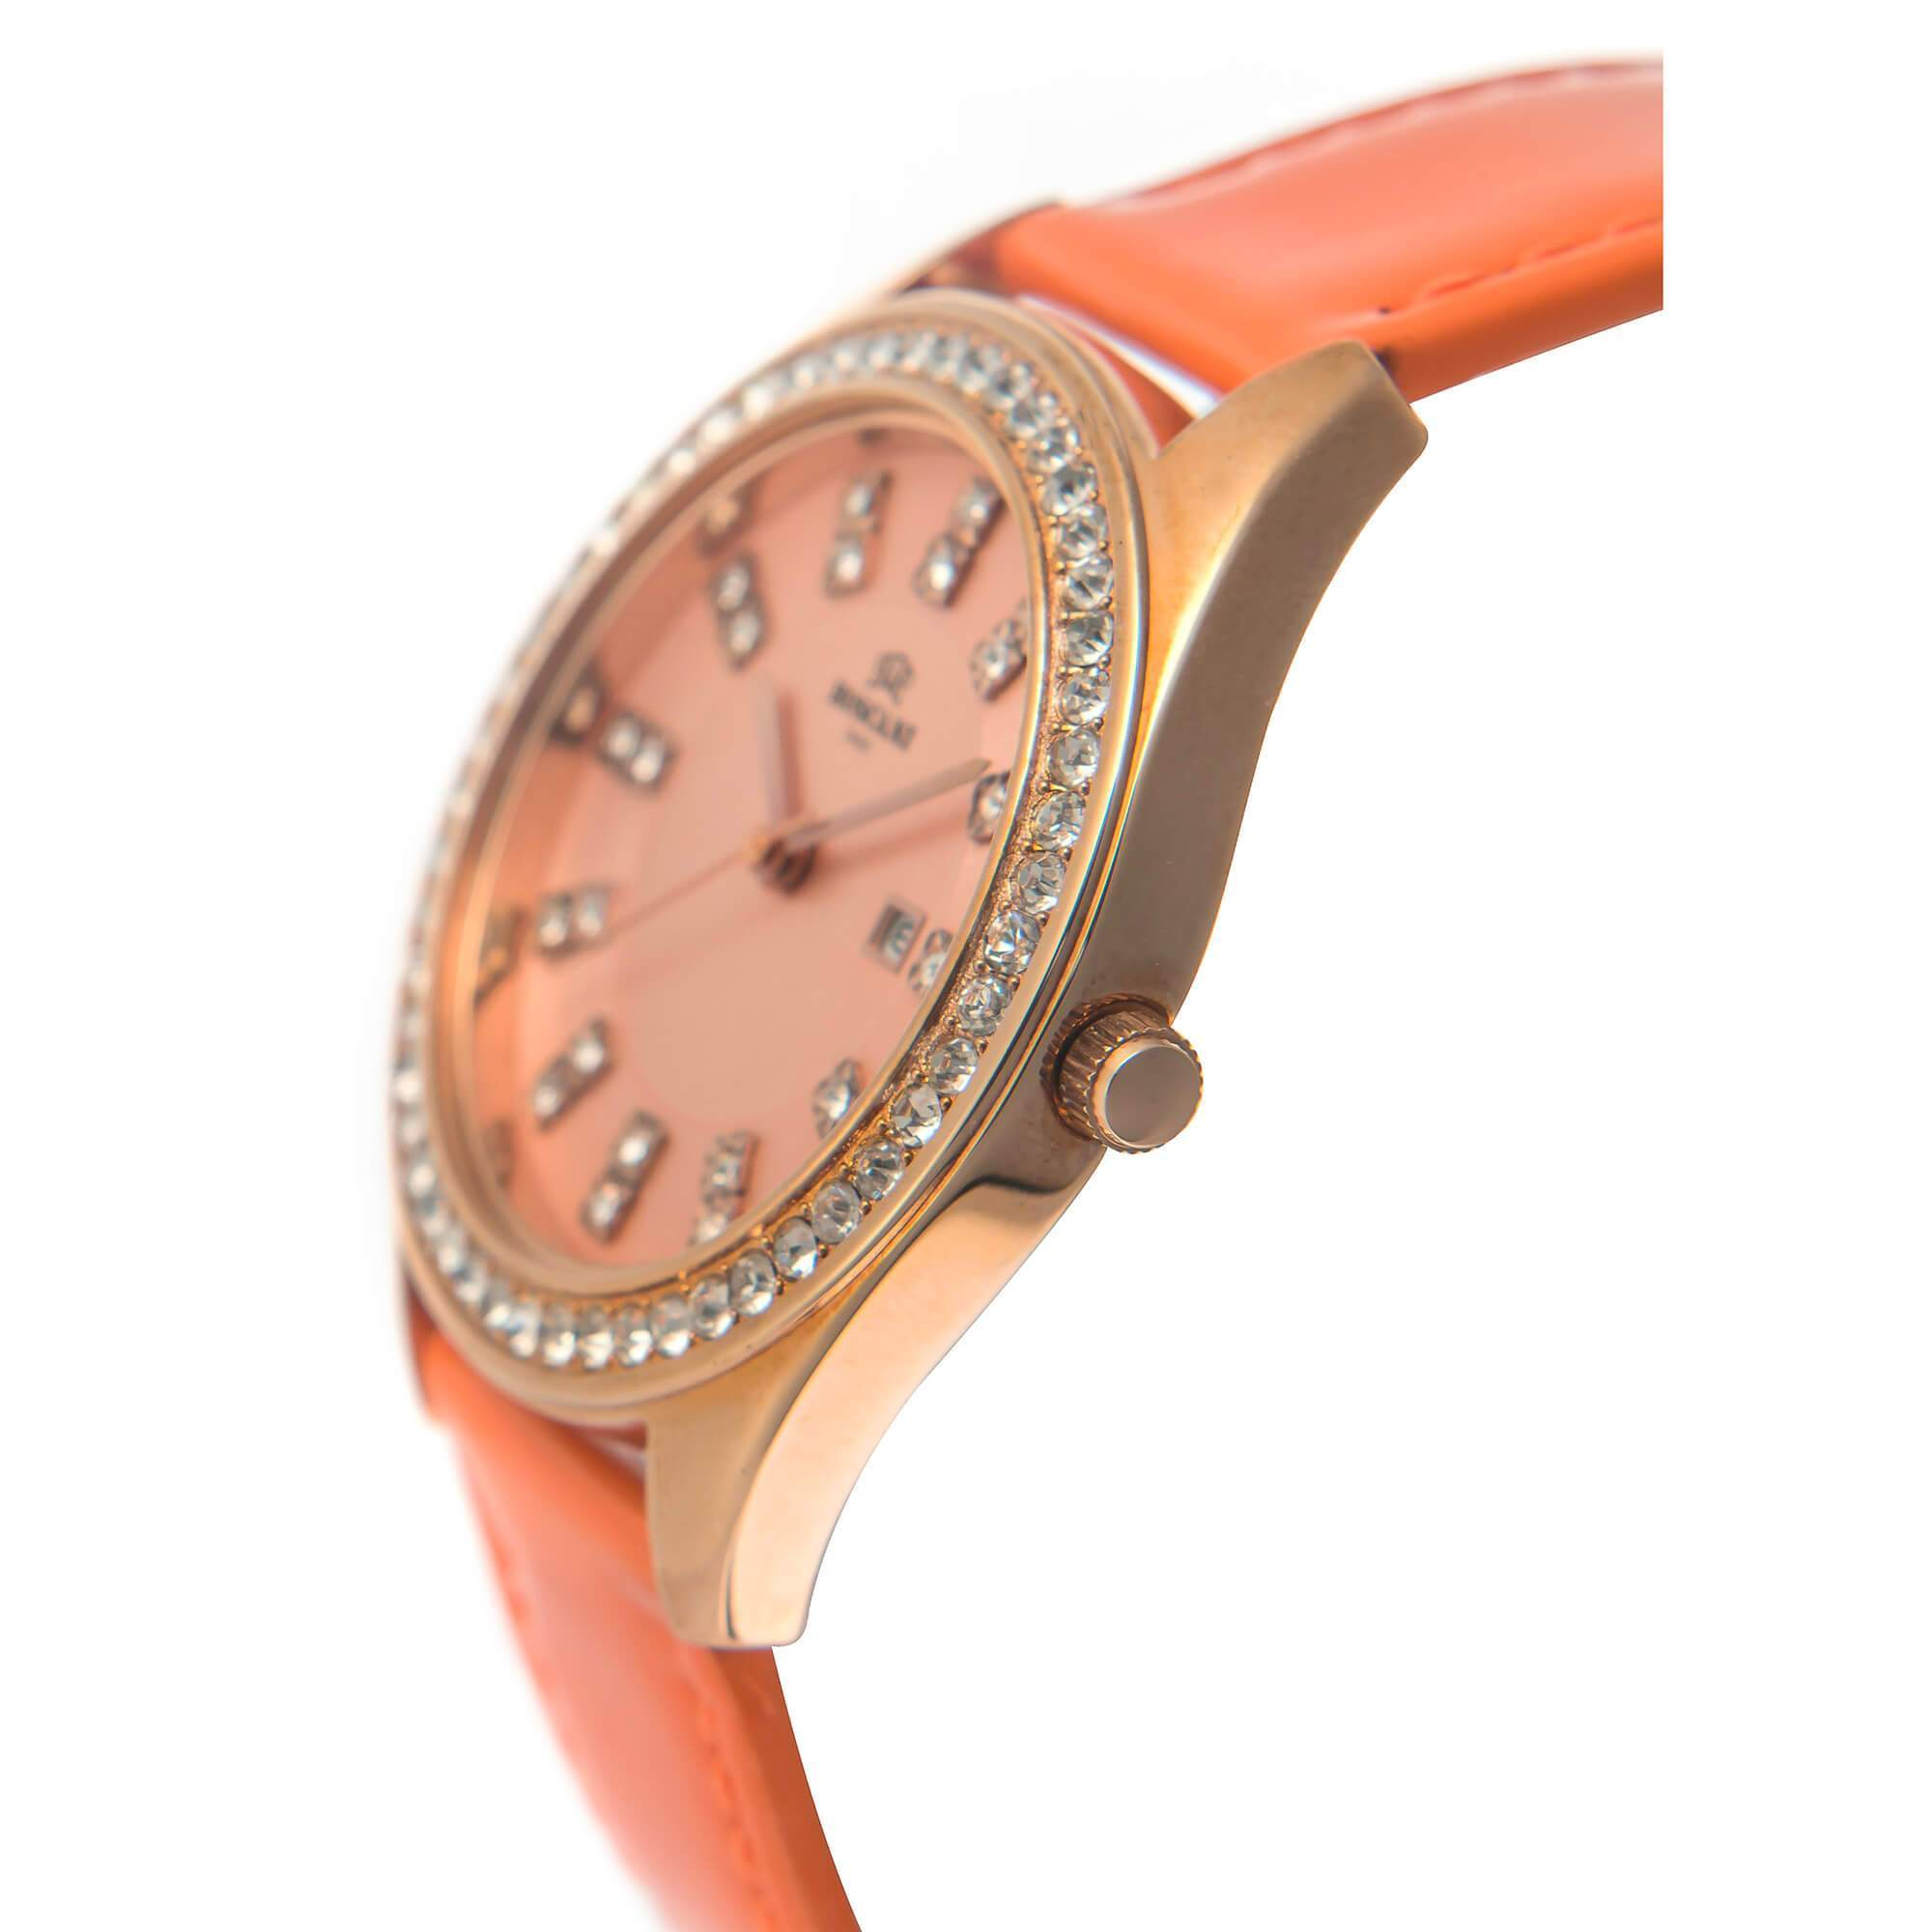 watch daniel wellington pin petite classic watches a peach melrose new